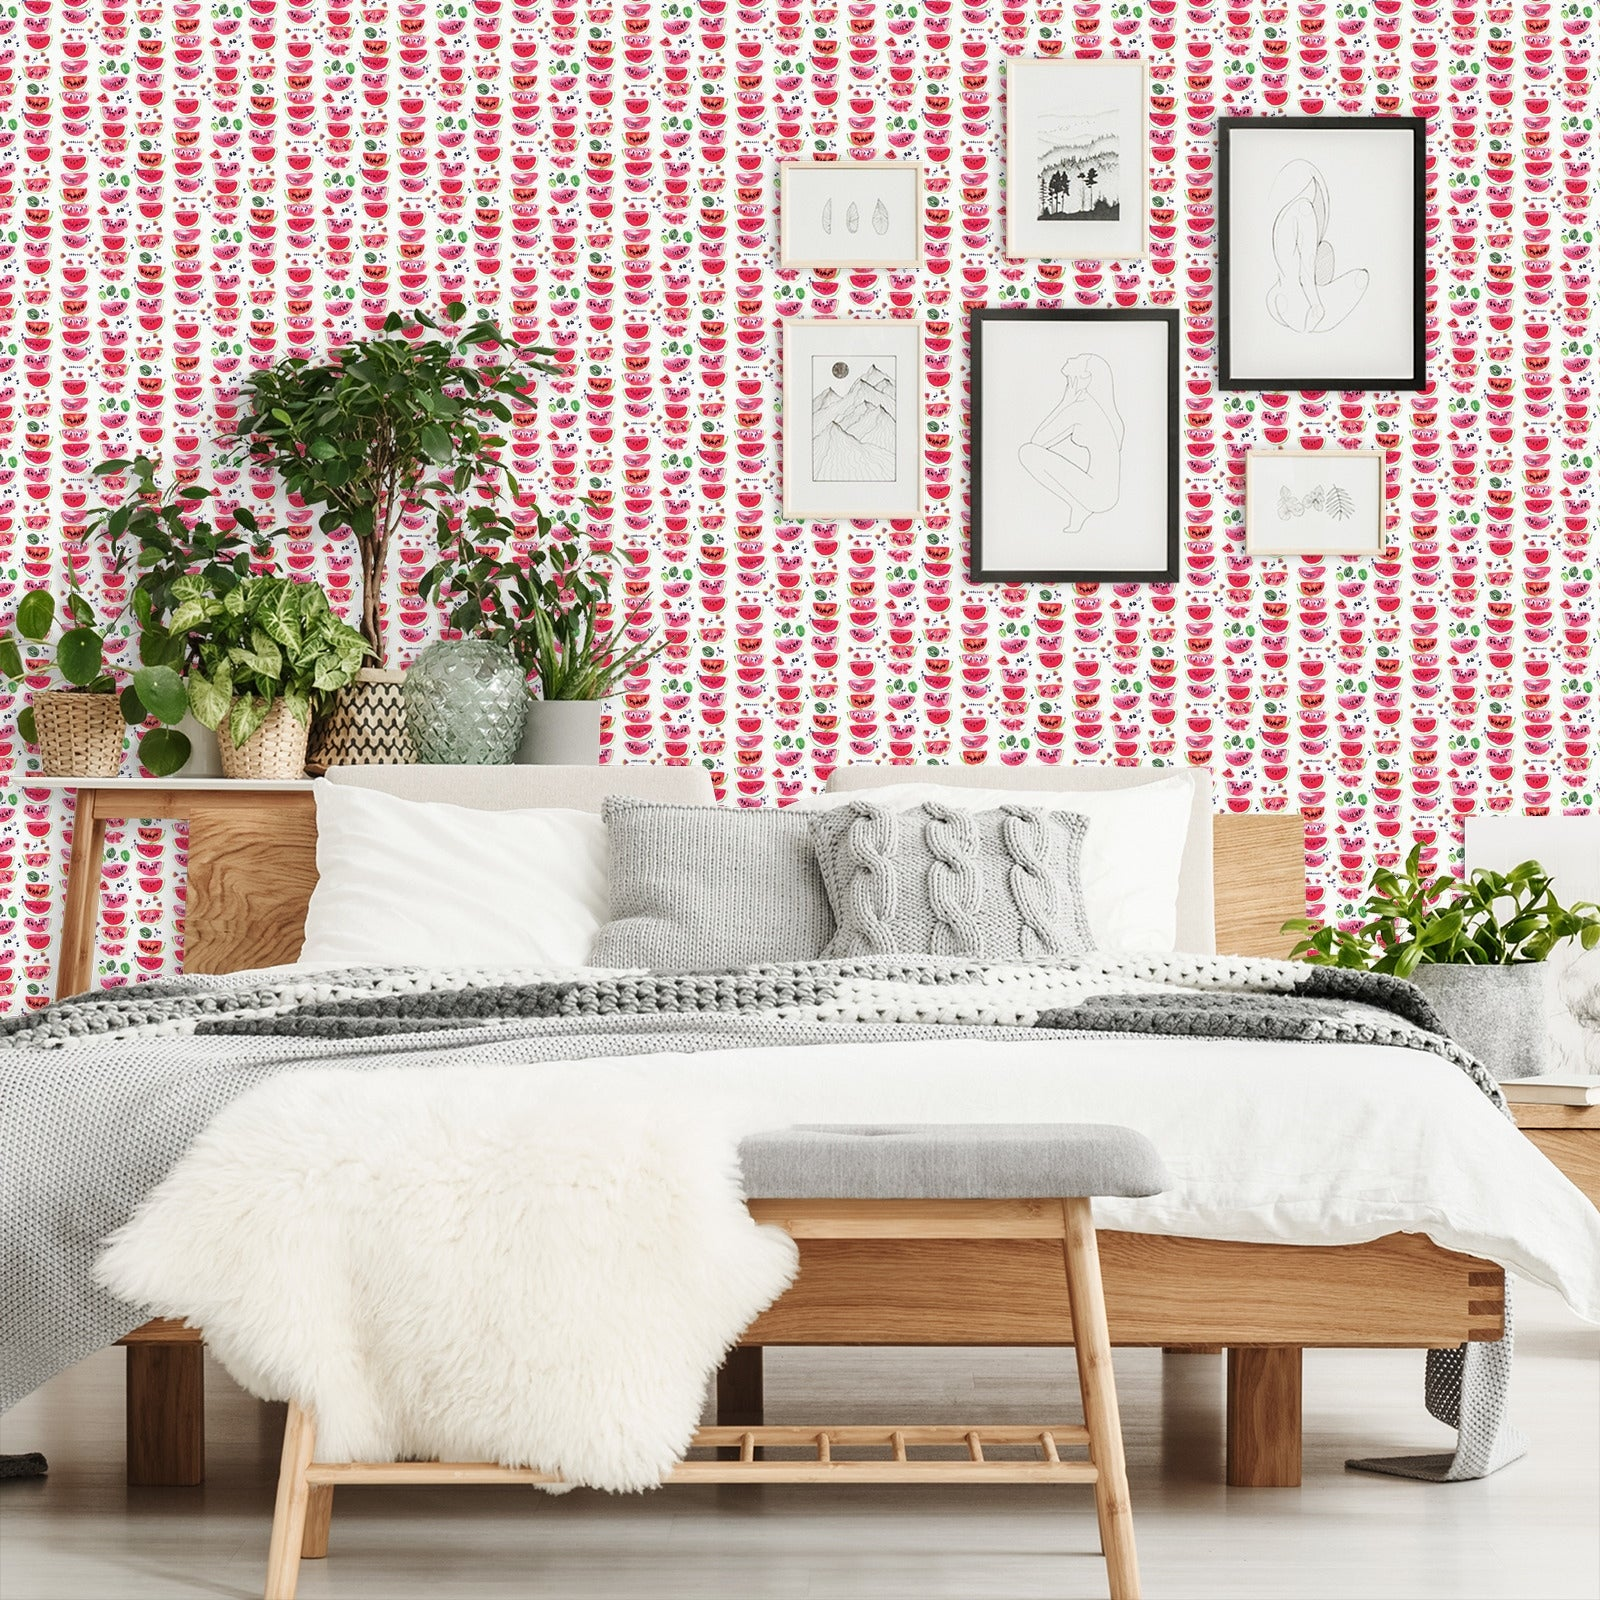 18 L X 24 W Peel Stick Wallpaper Roll In Black And White Pots By Rebecca Prinn 18 X 24 Overstock 32844479